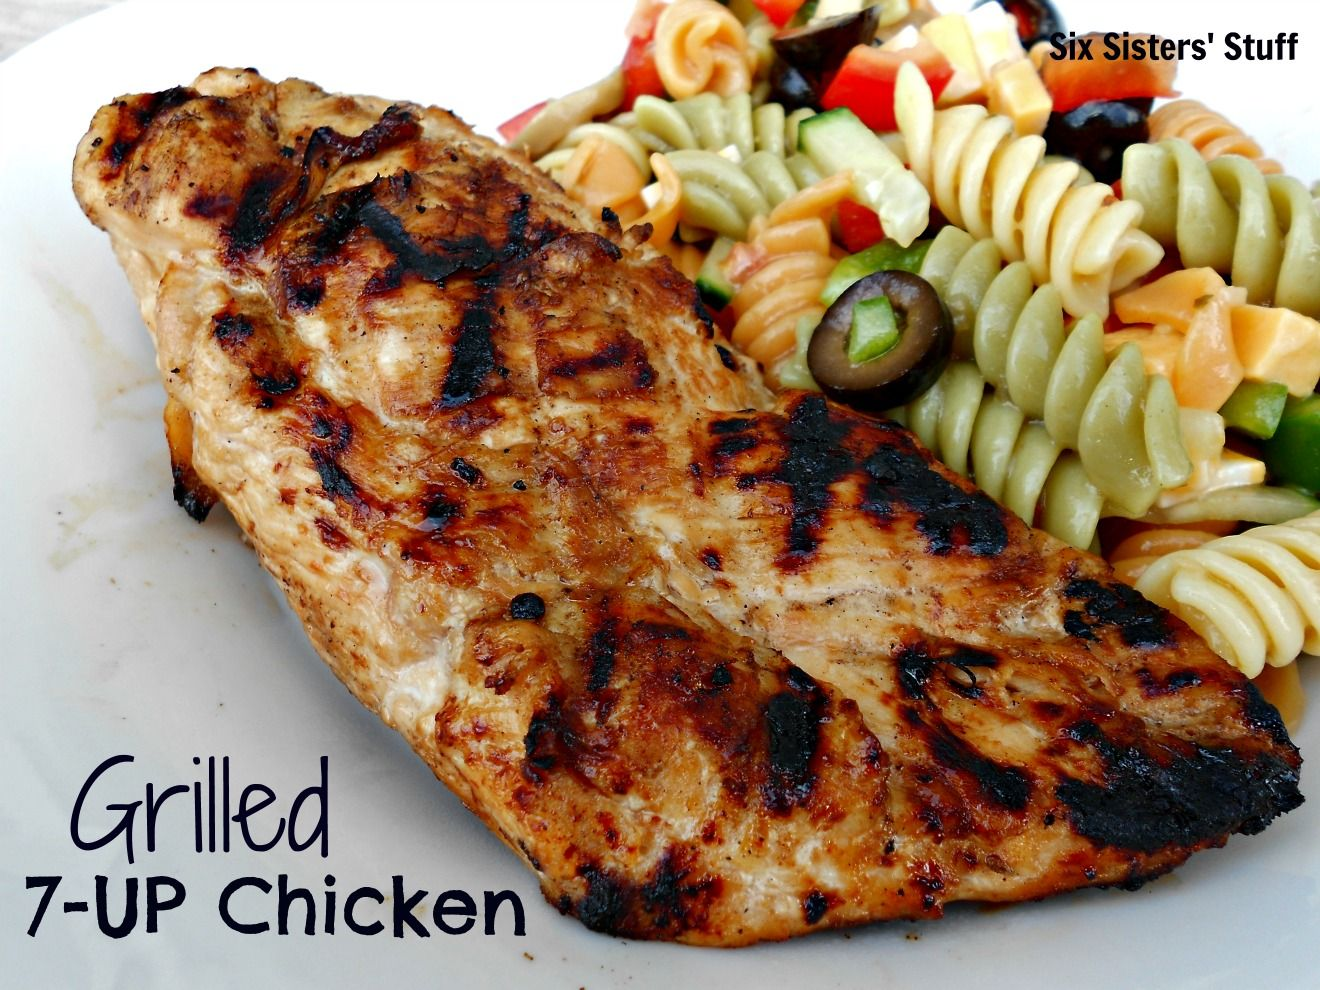 Six Sisters' Stuff: Mom's SECRET Recipe: Grilled 7-UP Chicken